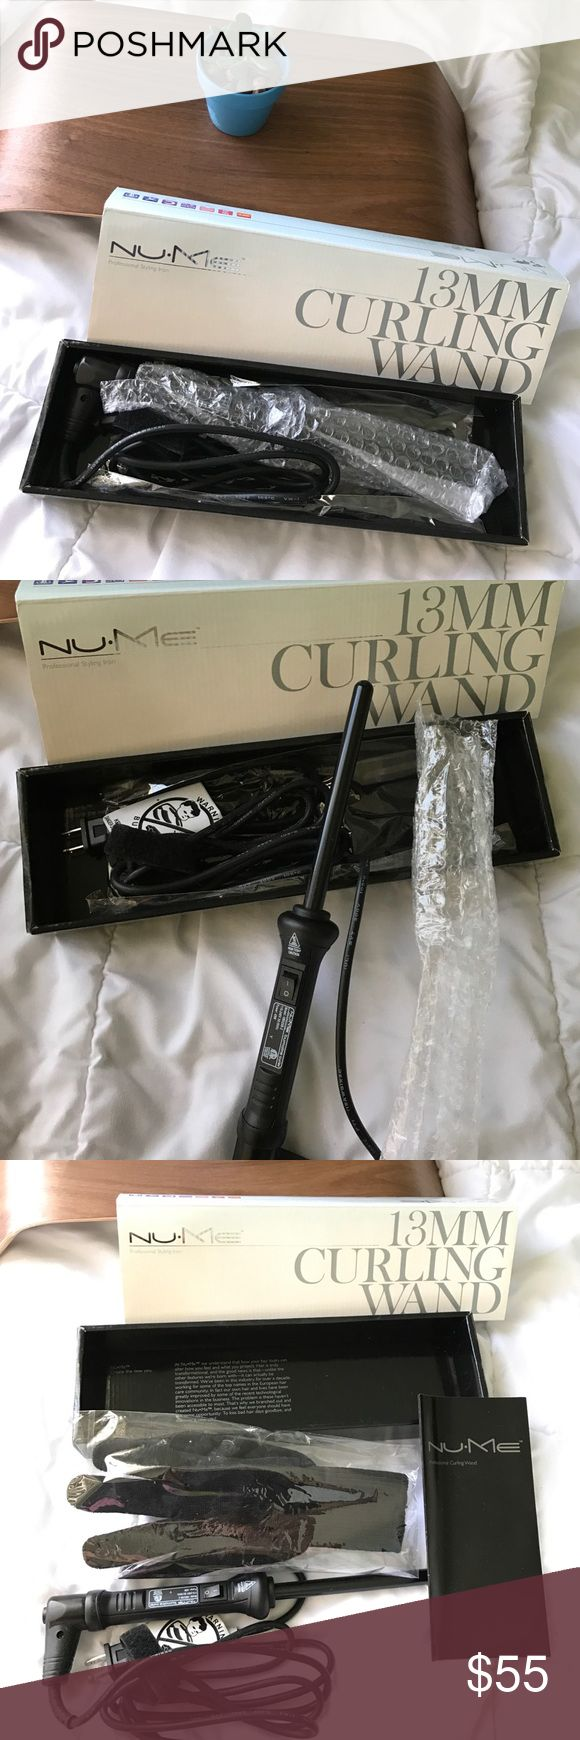 NuMe Curling Wand 13mm Professional styling iron. Nu•Me brand. 13mm. Includes heat protection gloves. Never used, has been in storage for a while, and have no need for it. $65 value. Reasonable offers considered. No trades sorry NuMe Other